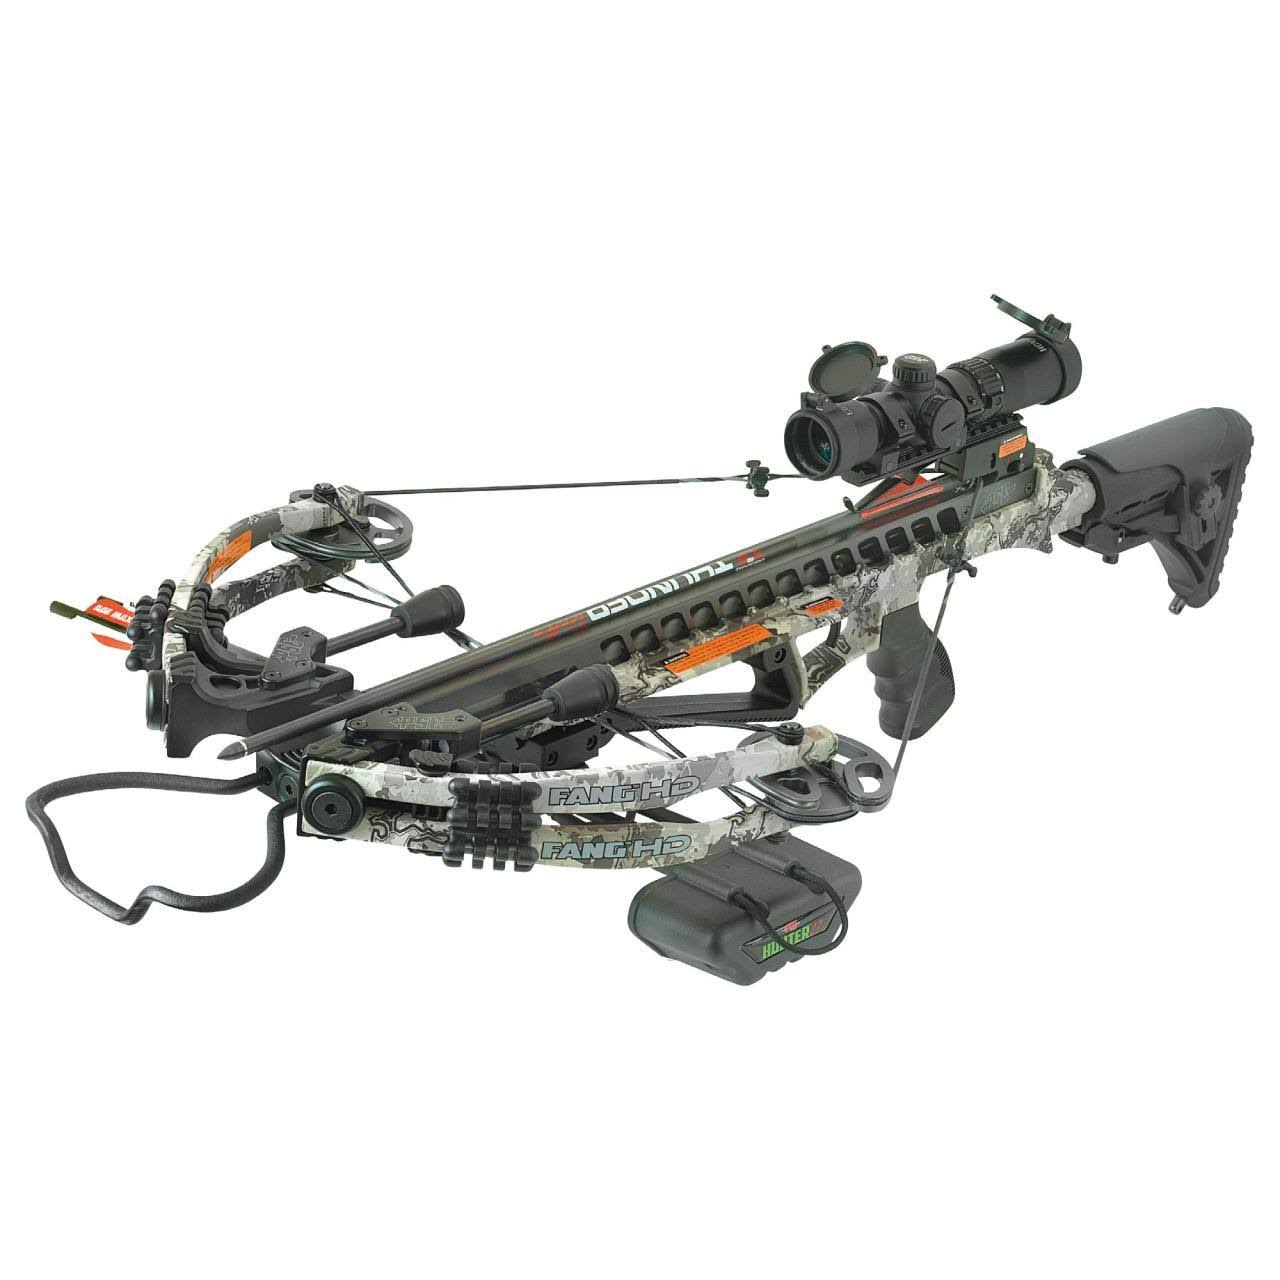 PSE Fang HD Crossbow Package Tru Timber Western Viper